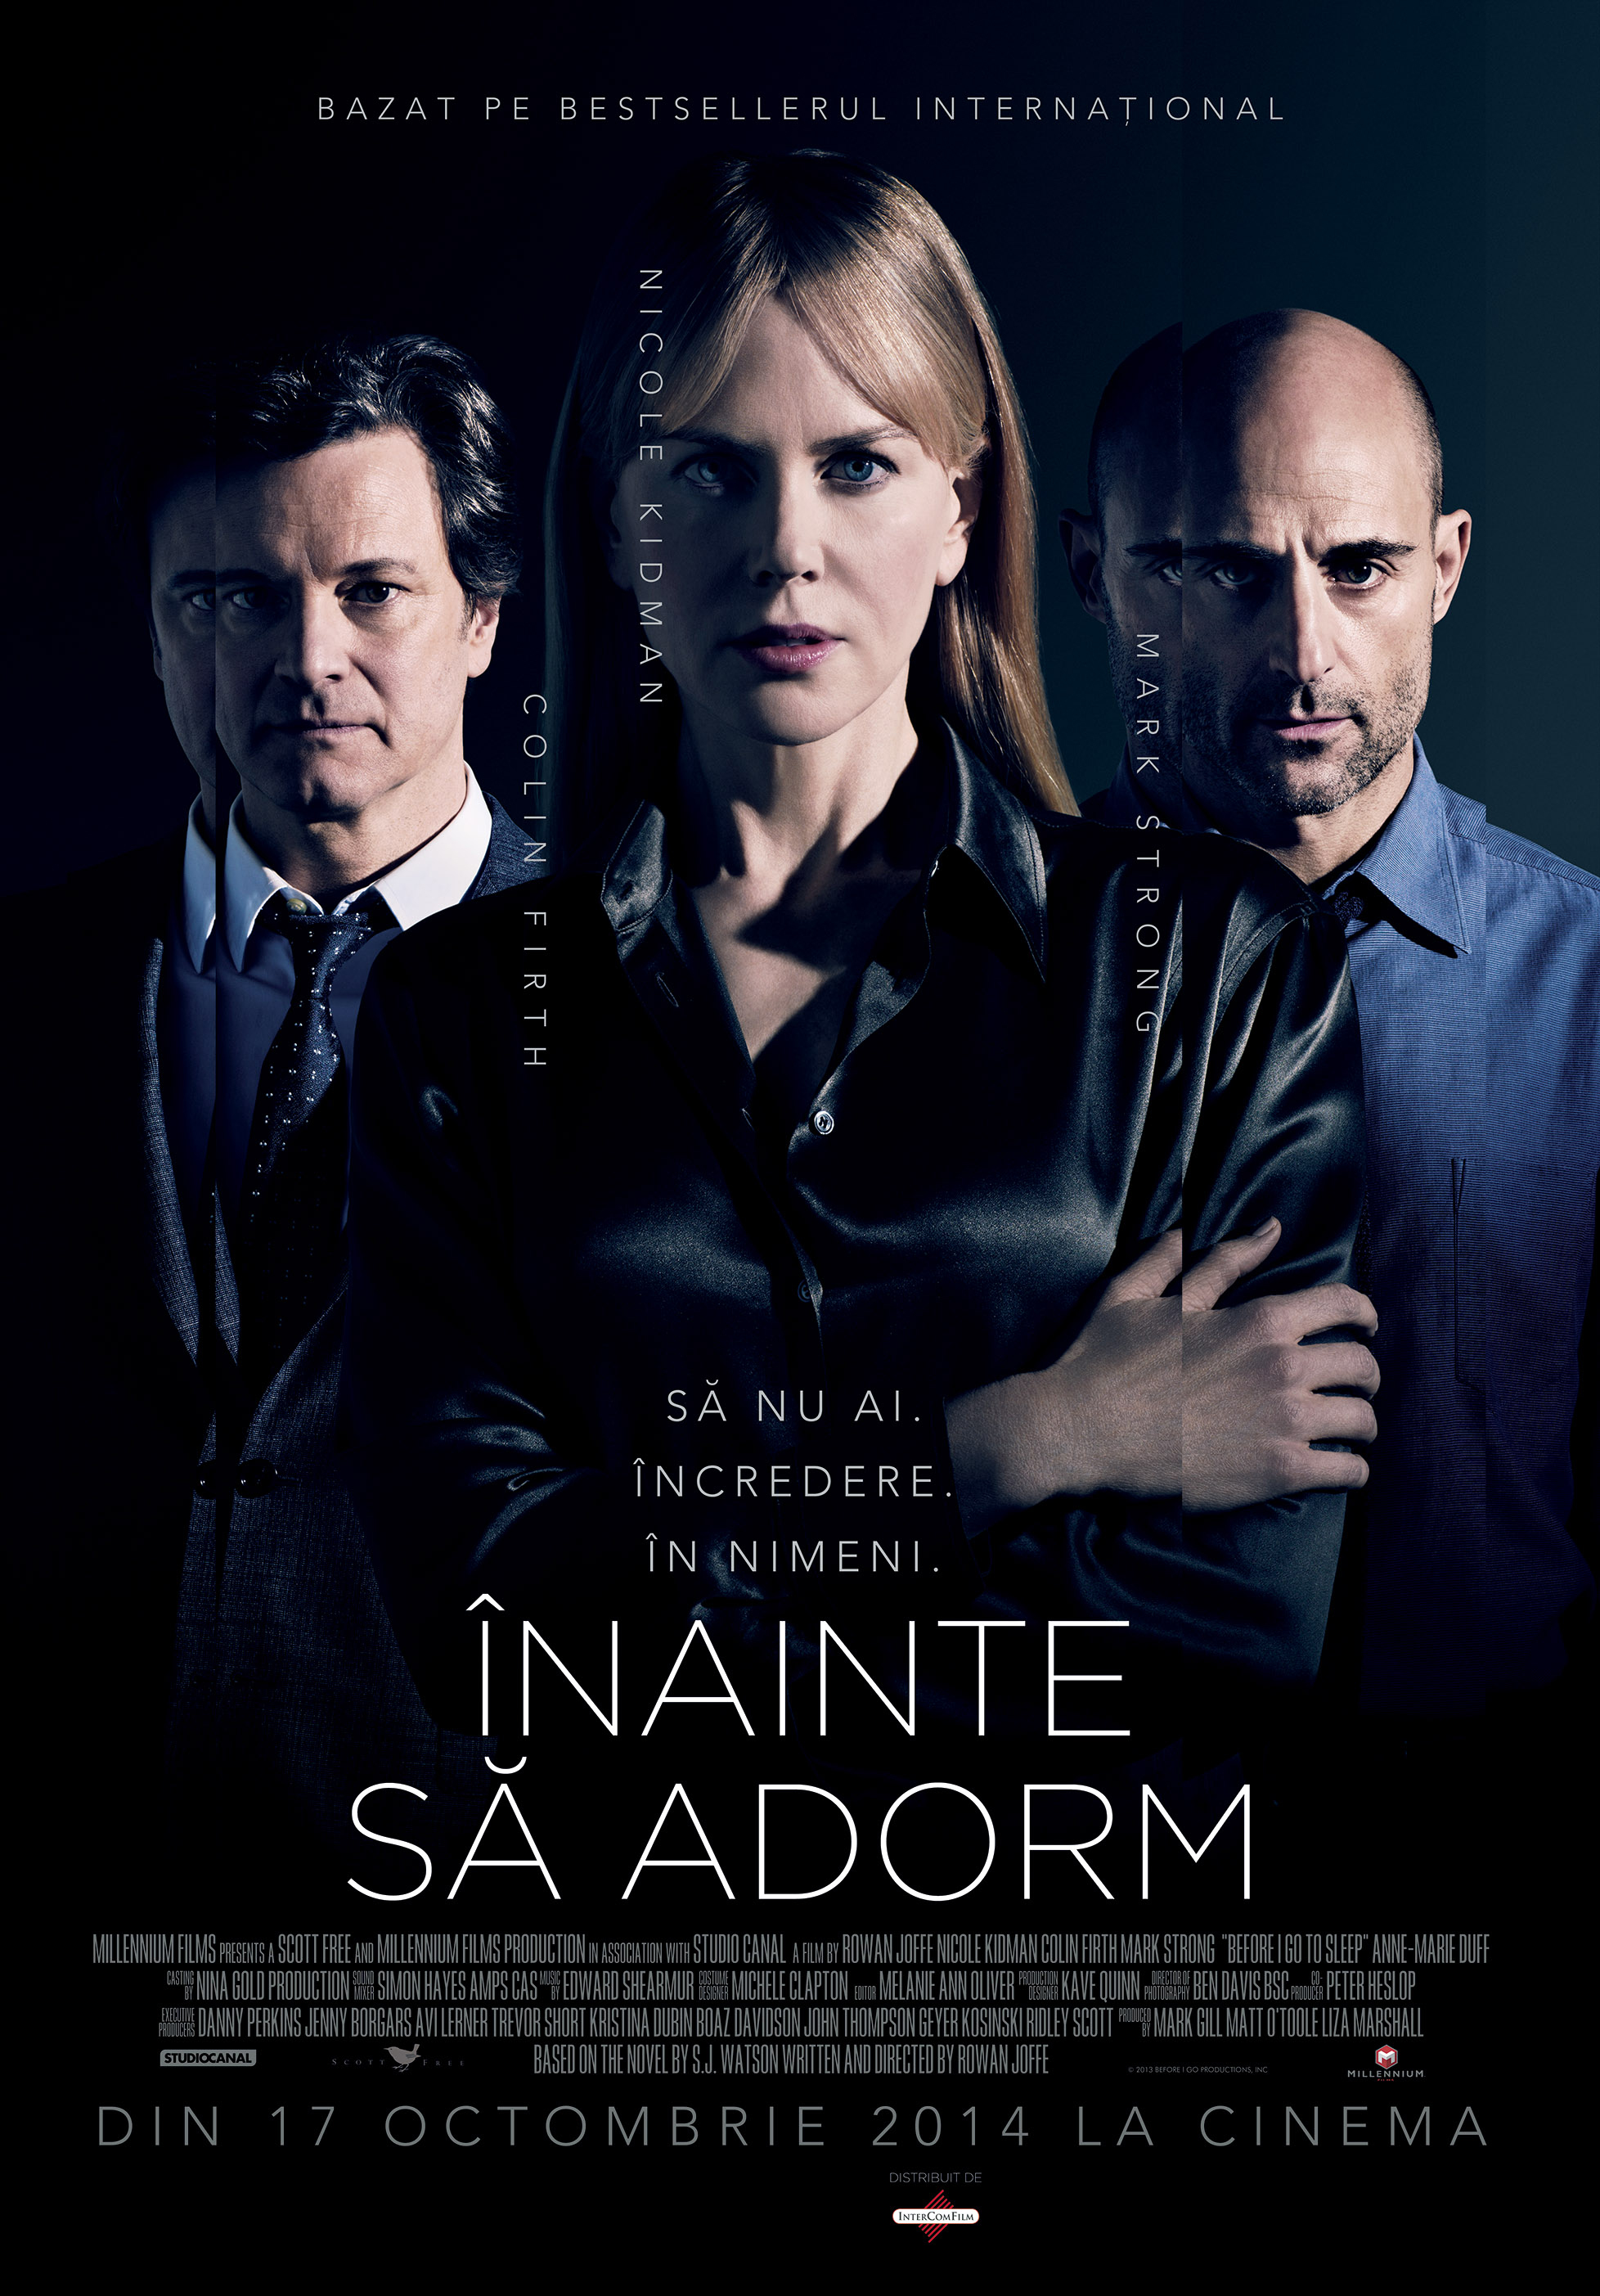 Inainte sa adorm / Before I Go to Sleep (Premiera)